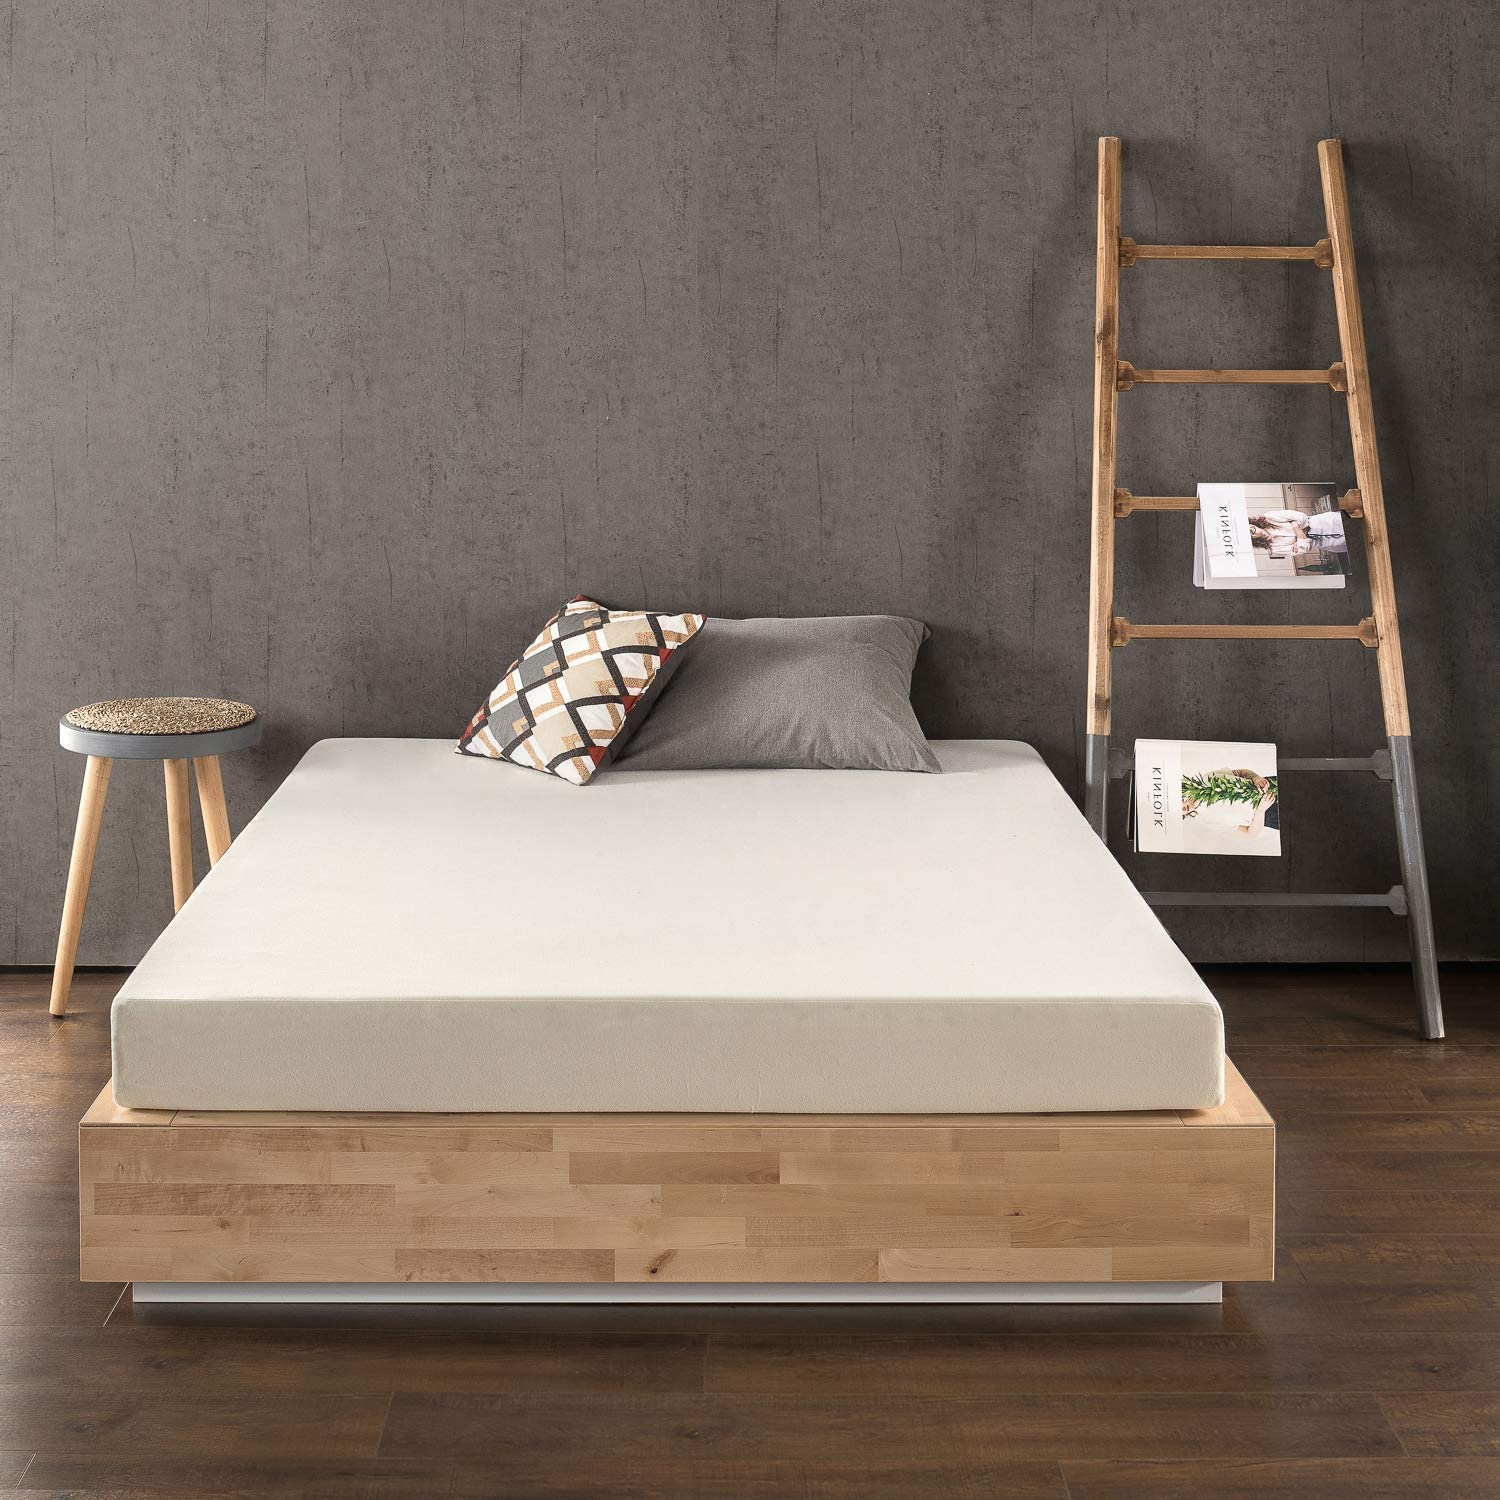 MEMORY FOAM MATTRESS SALE ALL SIZES CHOOSE DEPTH AND INCH AND SIZE ROLL PACK